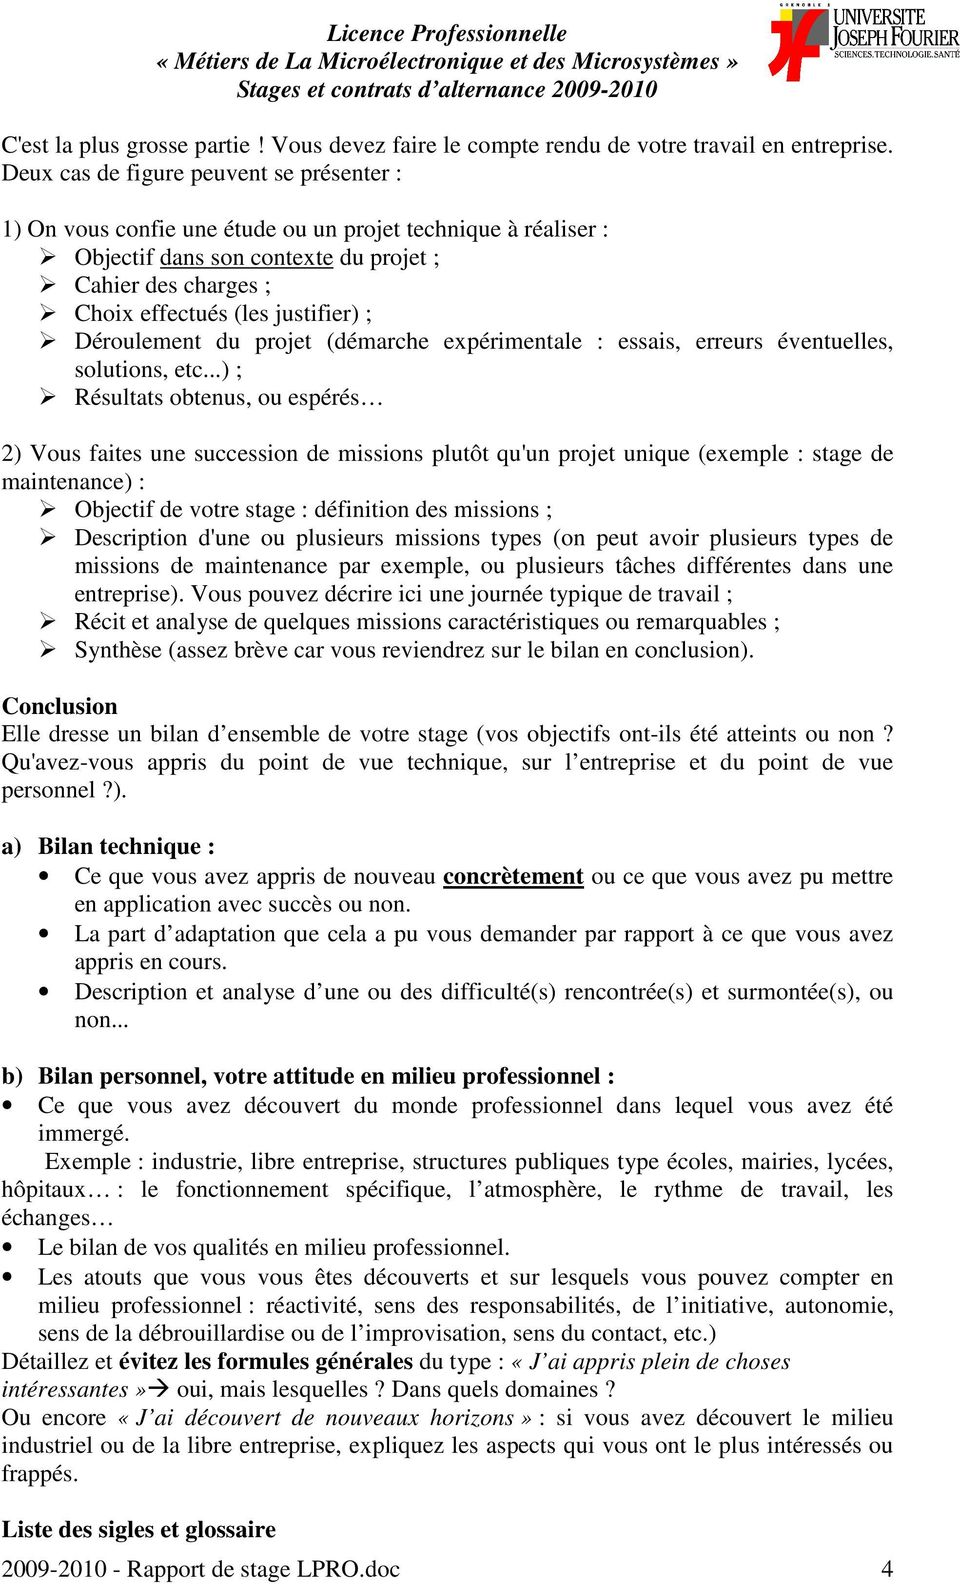 Introduction memoire de licence